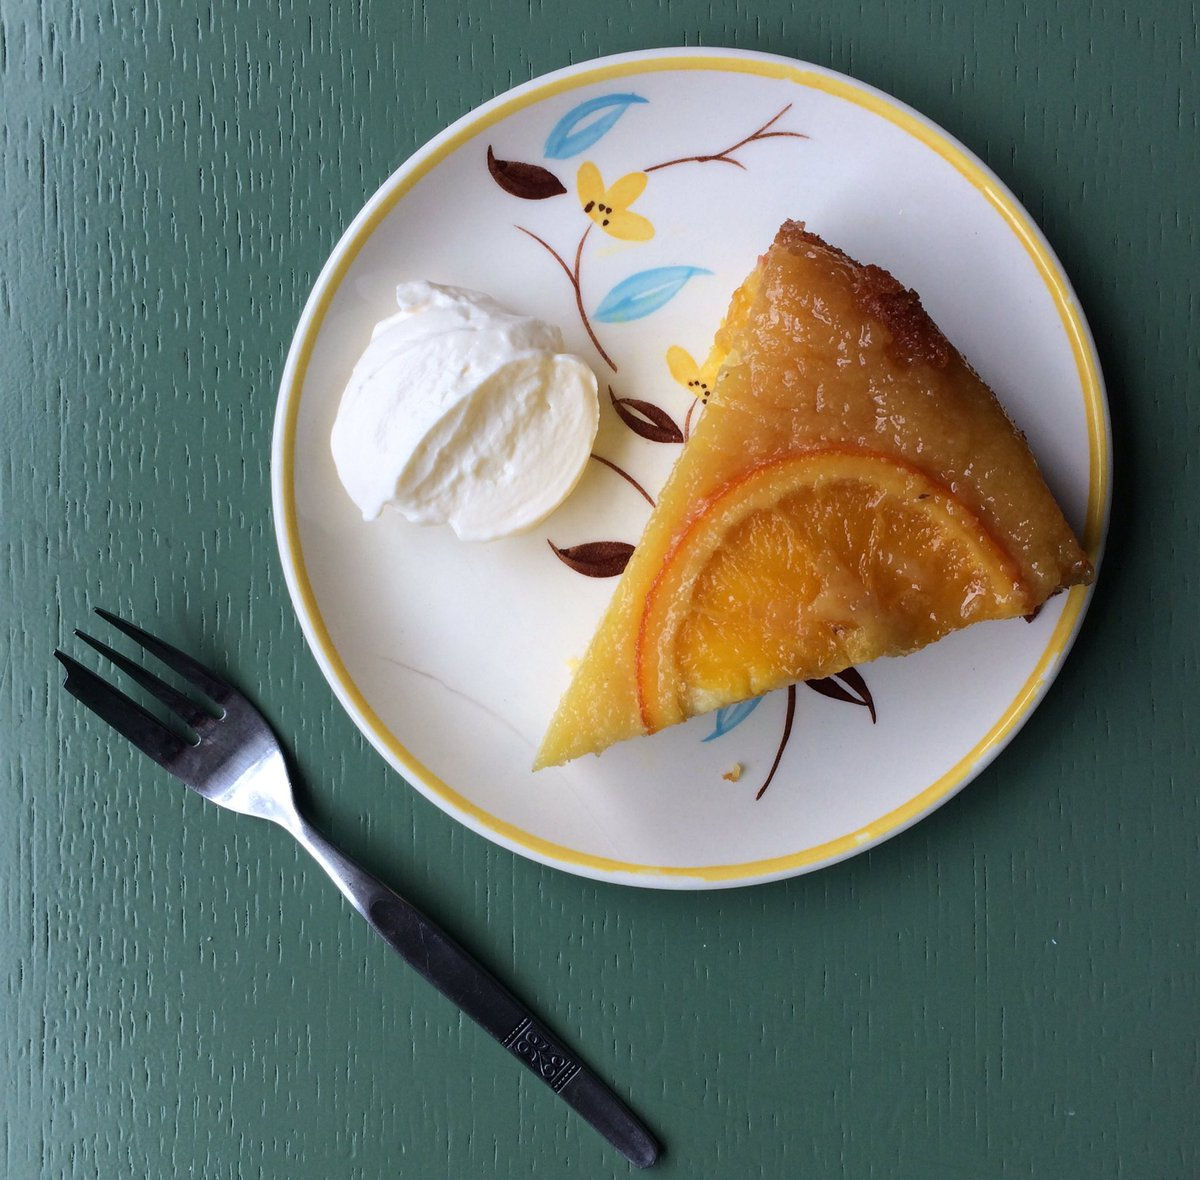 Sardinian style orange cake rocking the desserts this week. To complicate your choice we've also got chocolate torte, affogato with amoretti biscuits or freshly made strawberry sorbet and lemon ice cream. #sheffield #sheffieldissuper<br>http://pic.twitter.com/06yDevnpQ0